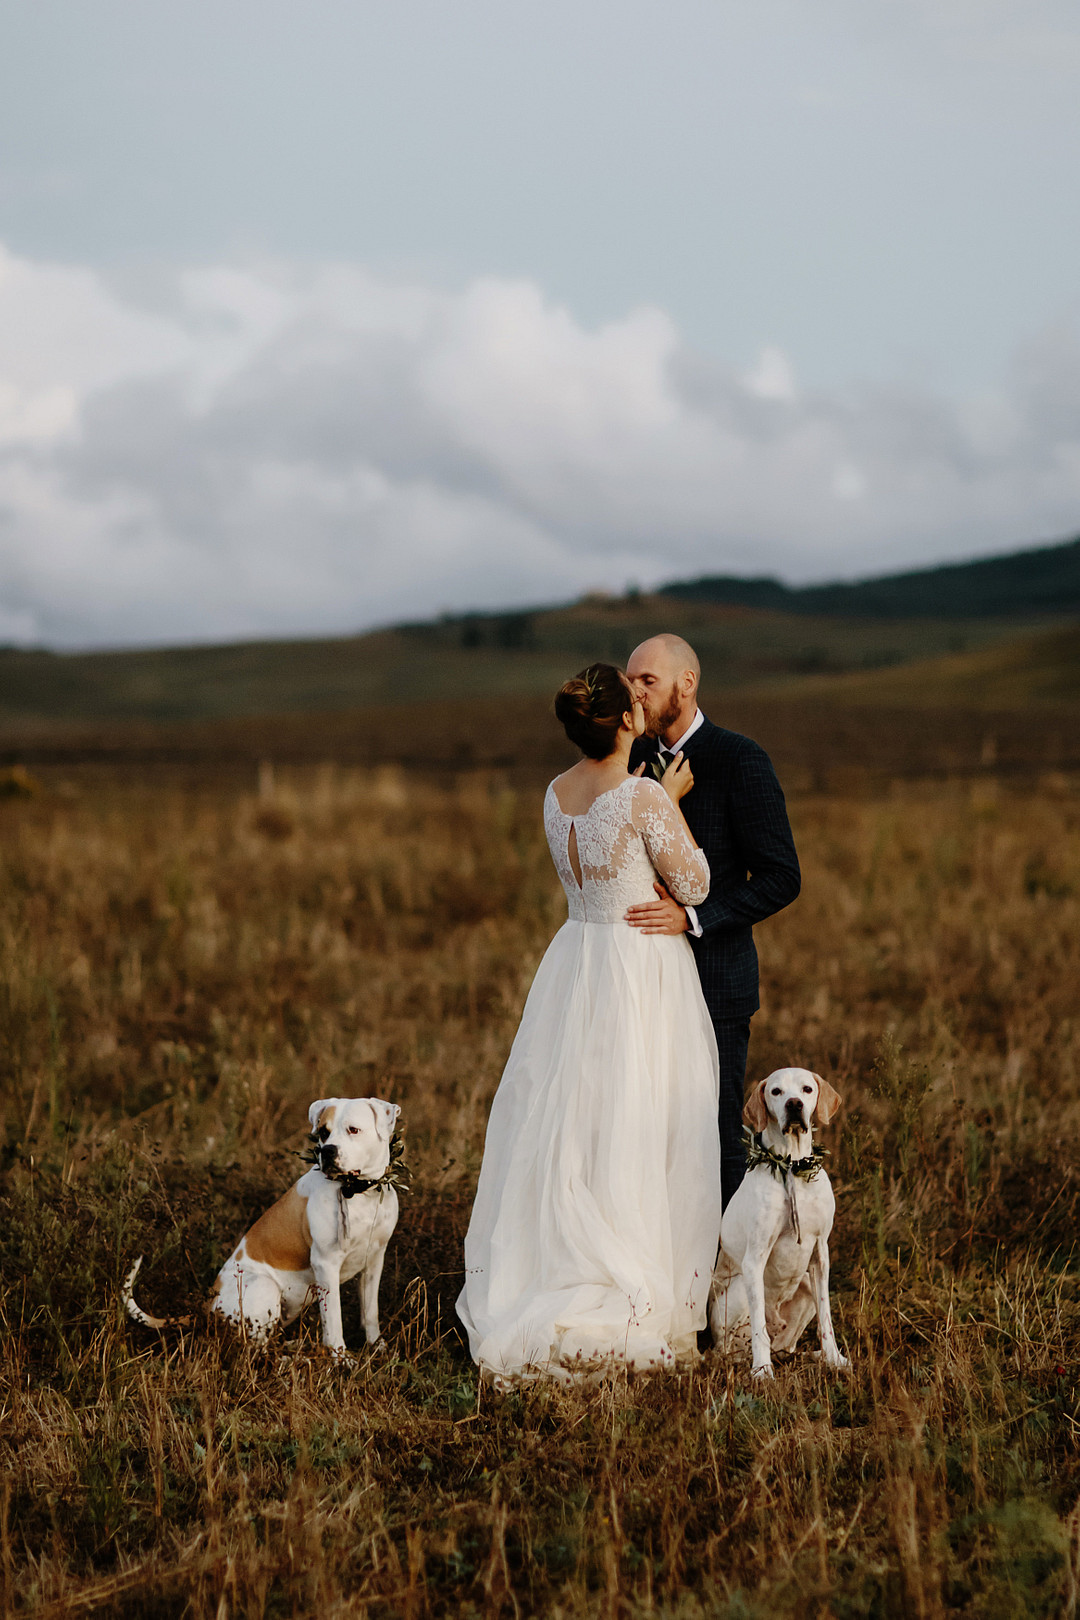 Bride and groom with their dogs wedding in Tuscany